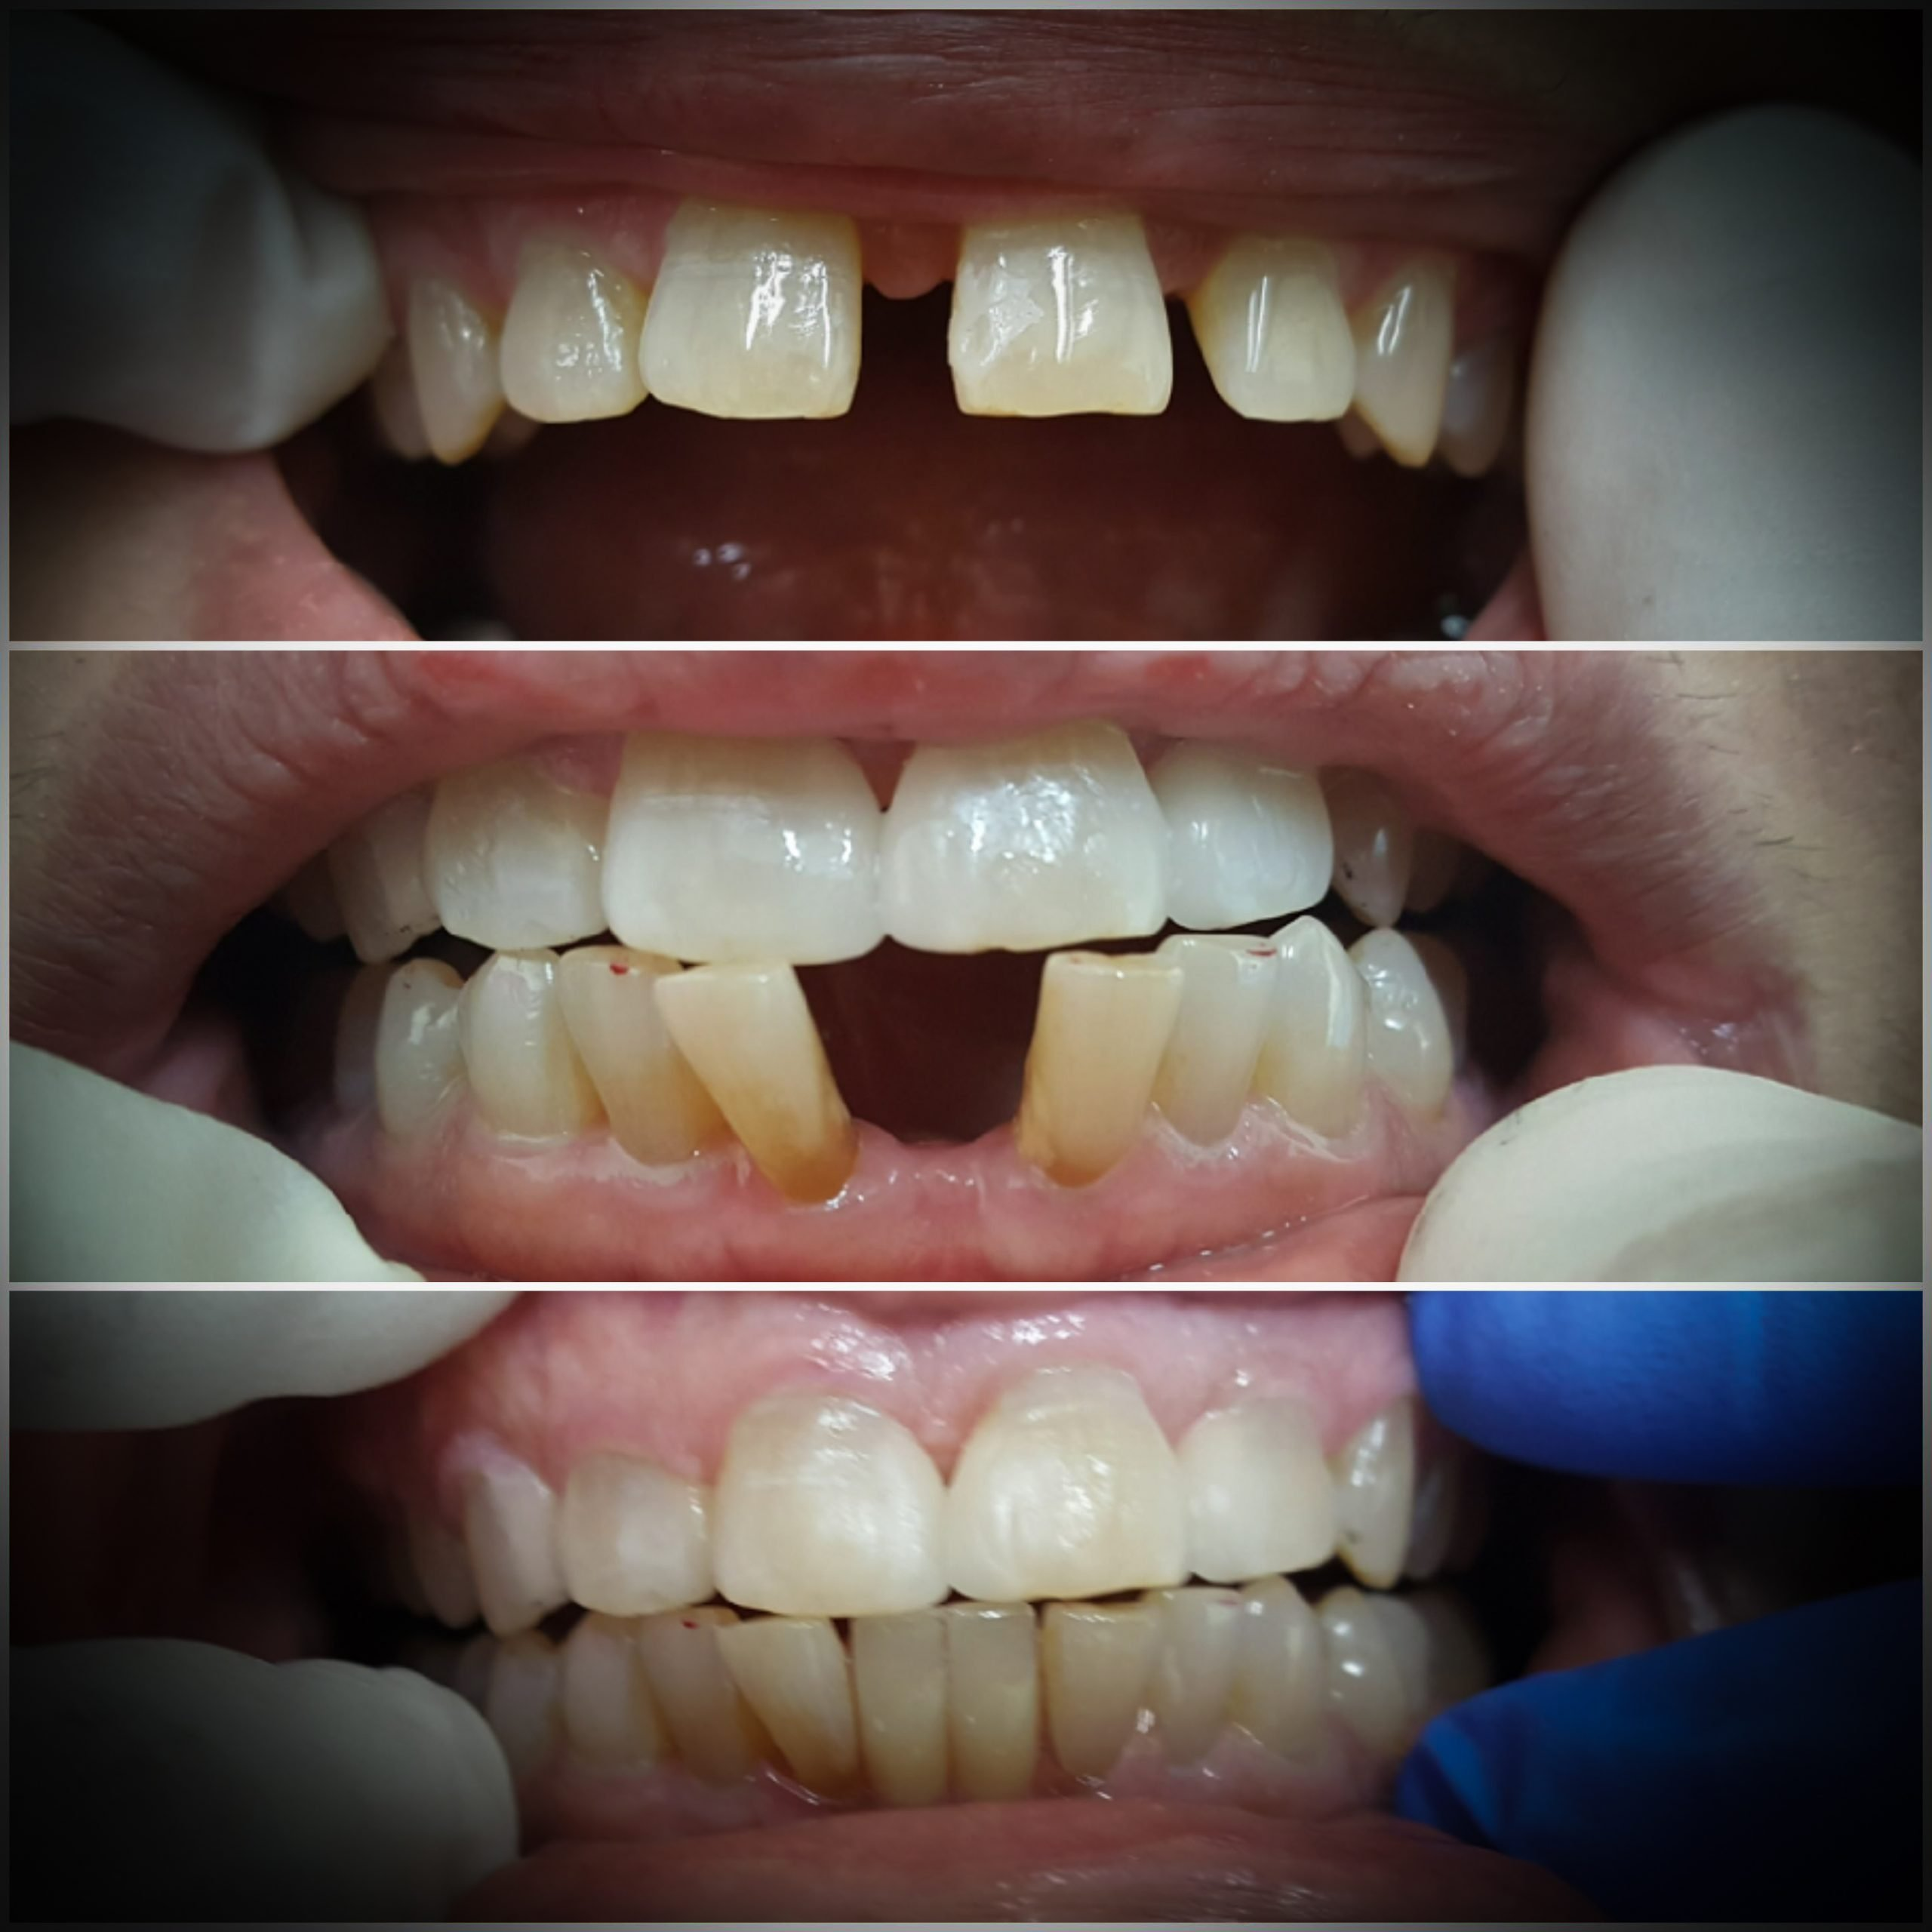 Before and after images for a patient with a gap between her top front teeth and bottom front teeth. After image shows the spacing is closed.